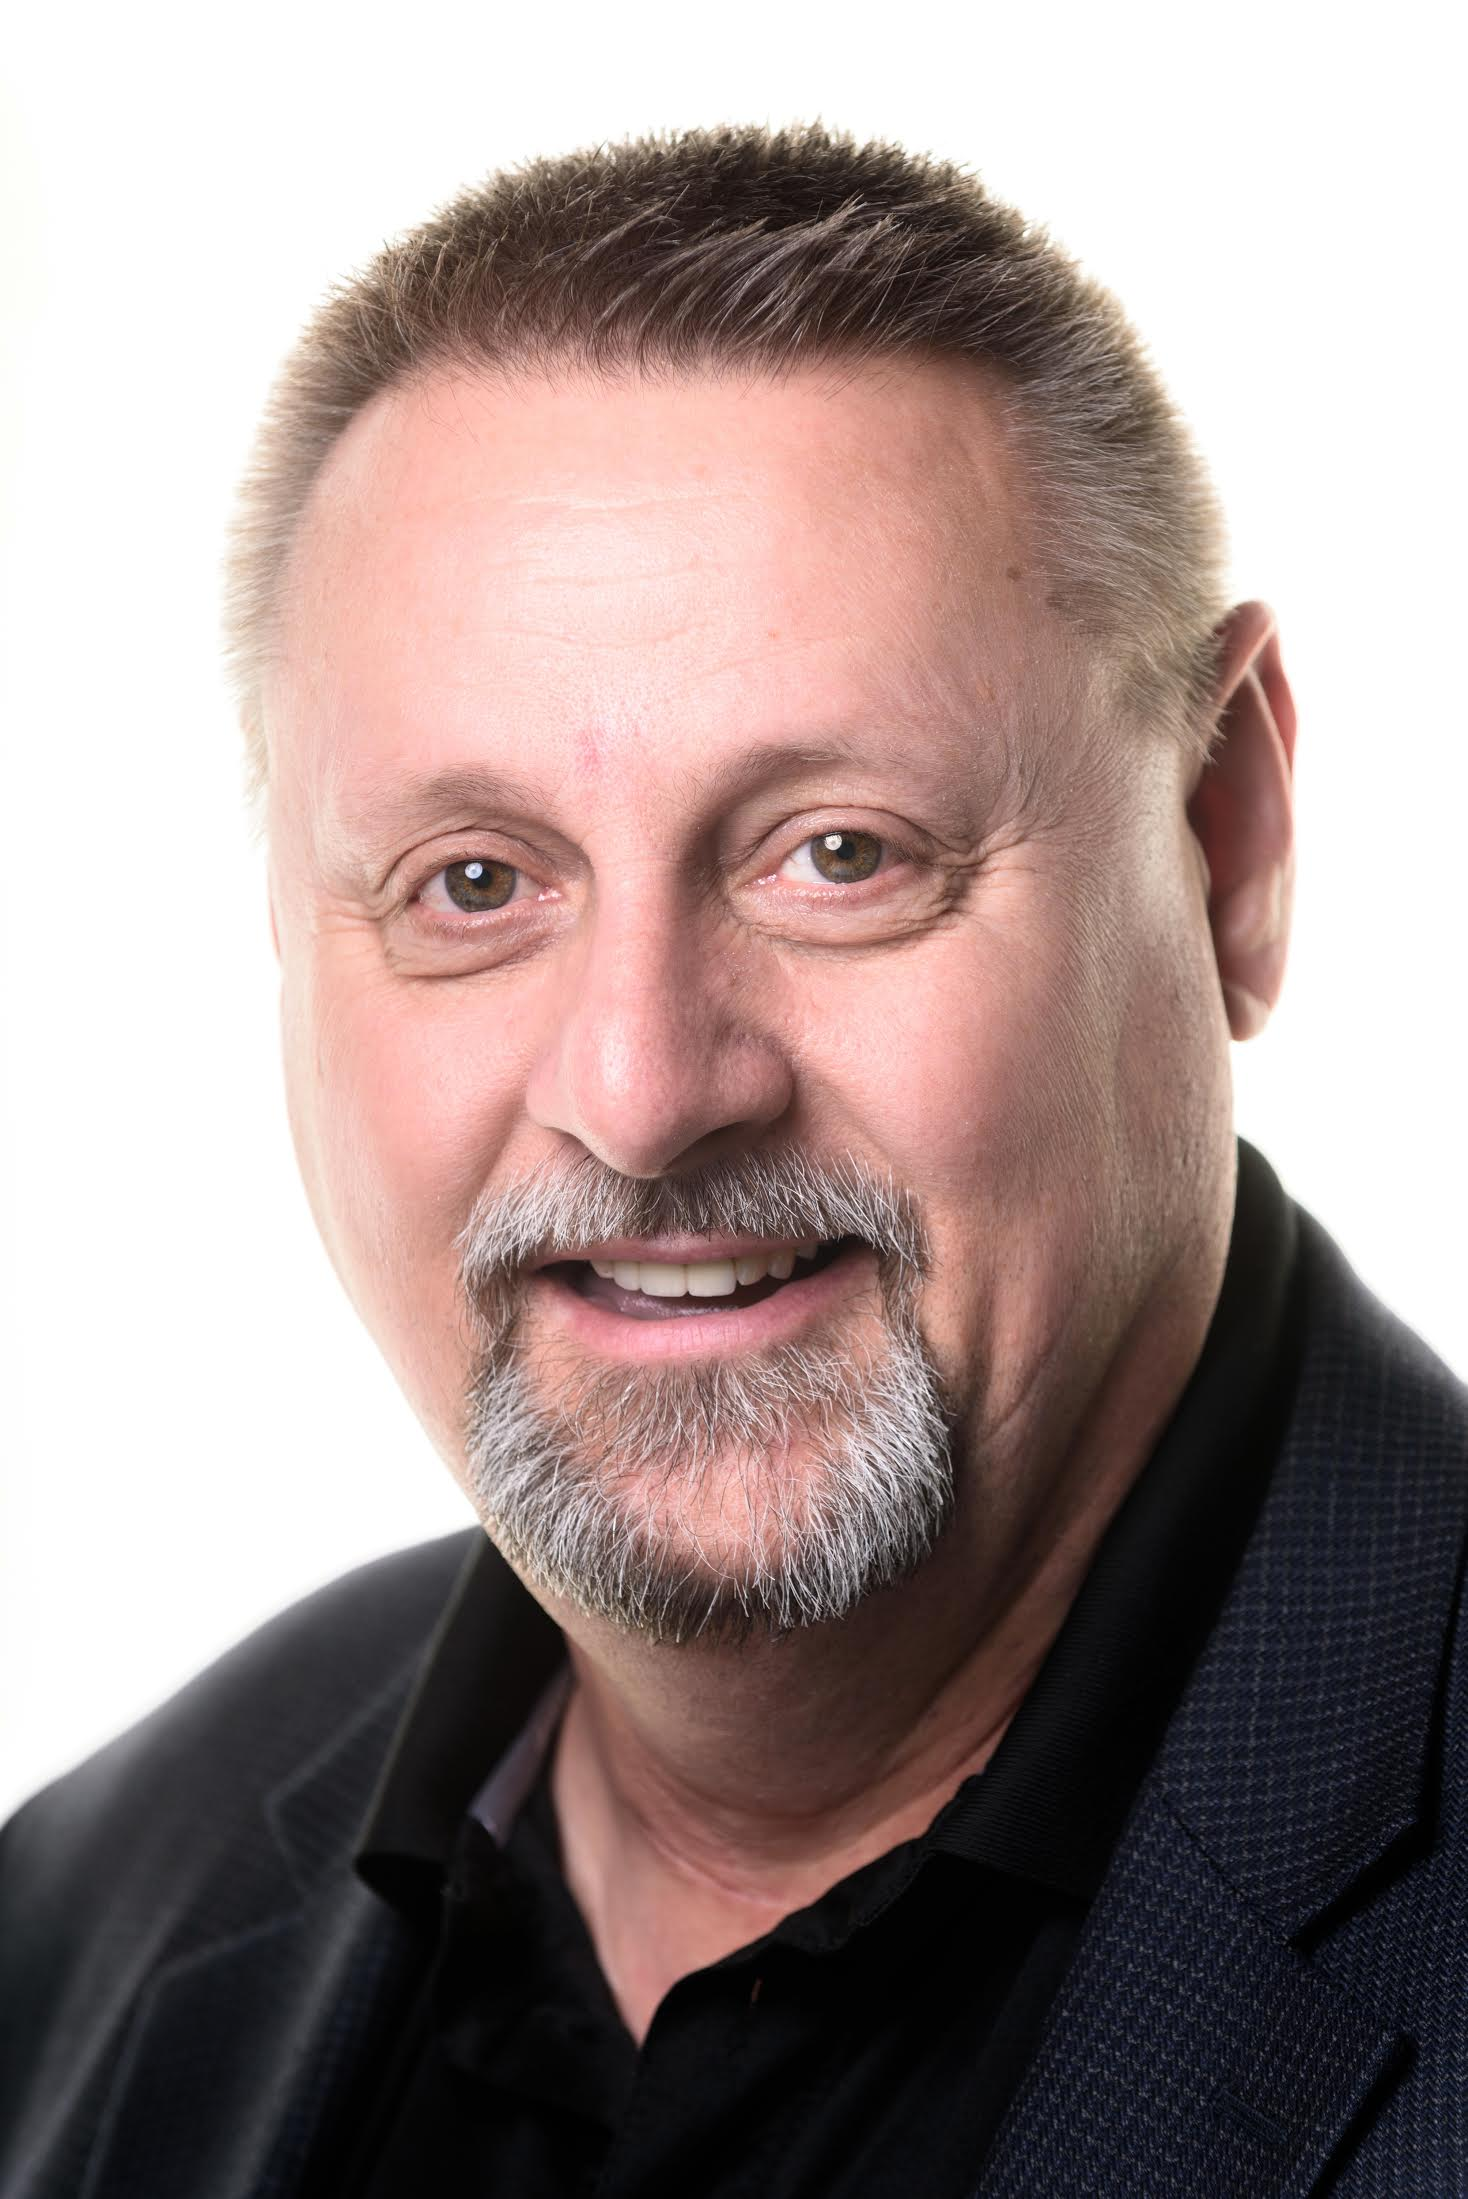 Meet Jim Hamilton - Jim is a featured speaker, professional coach, consultant, and workshop facilitator based in Alaska.